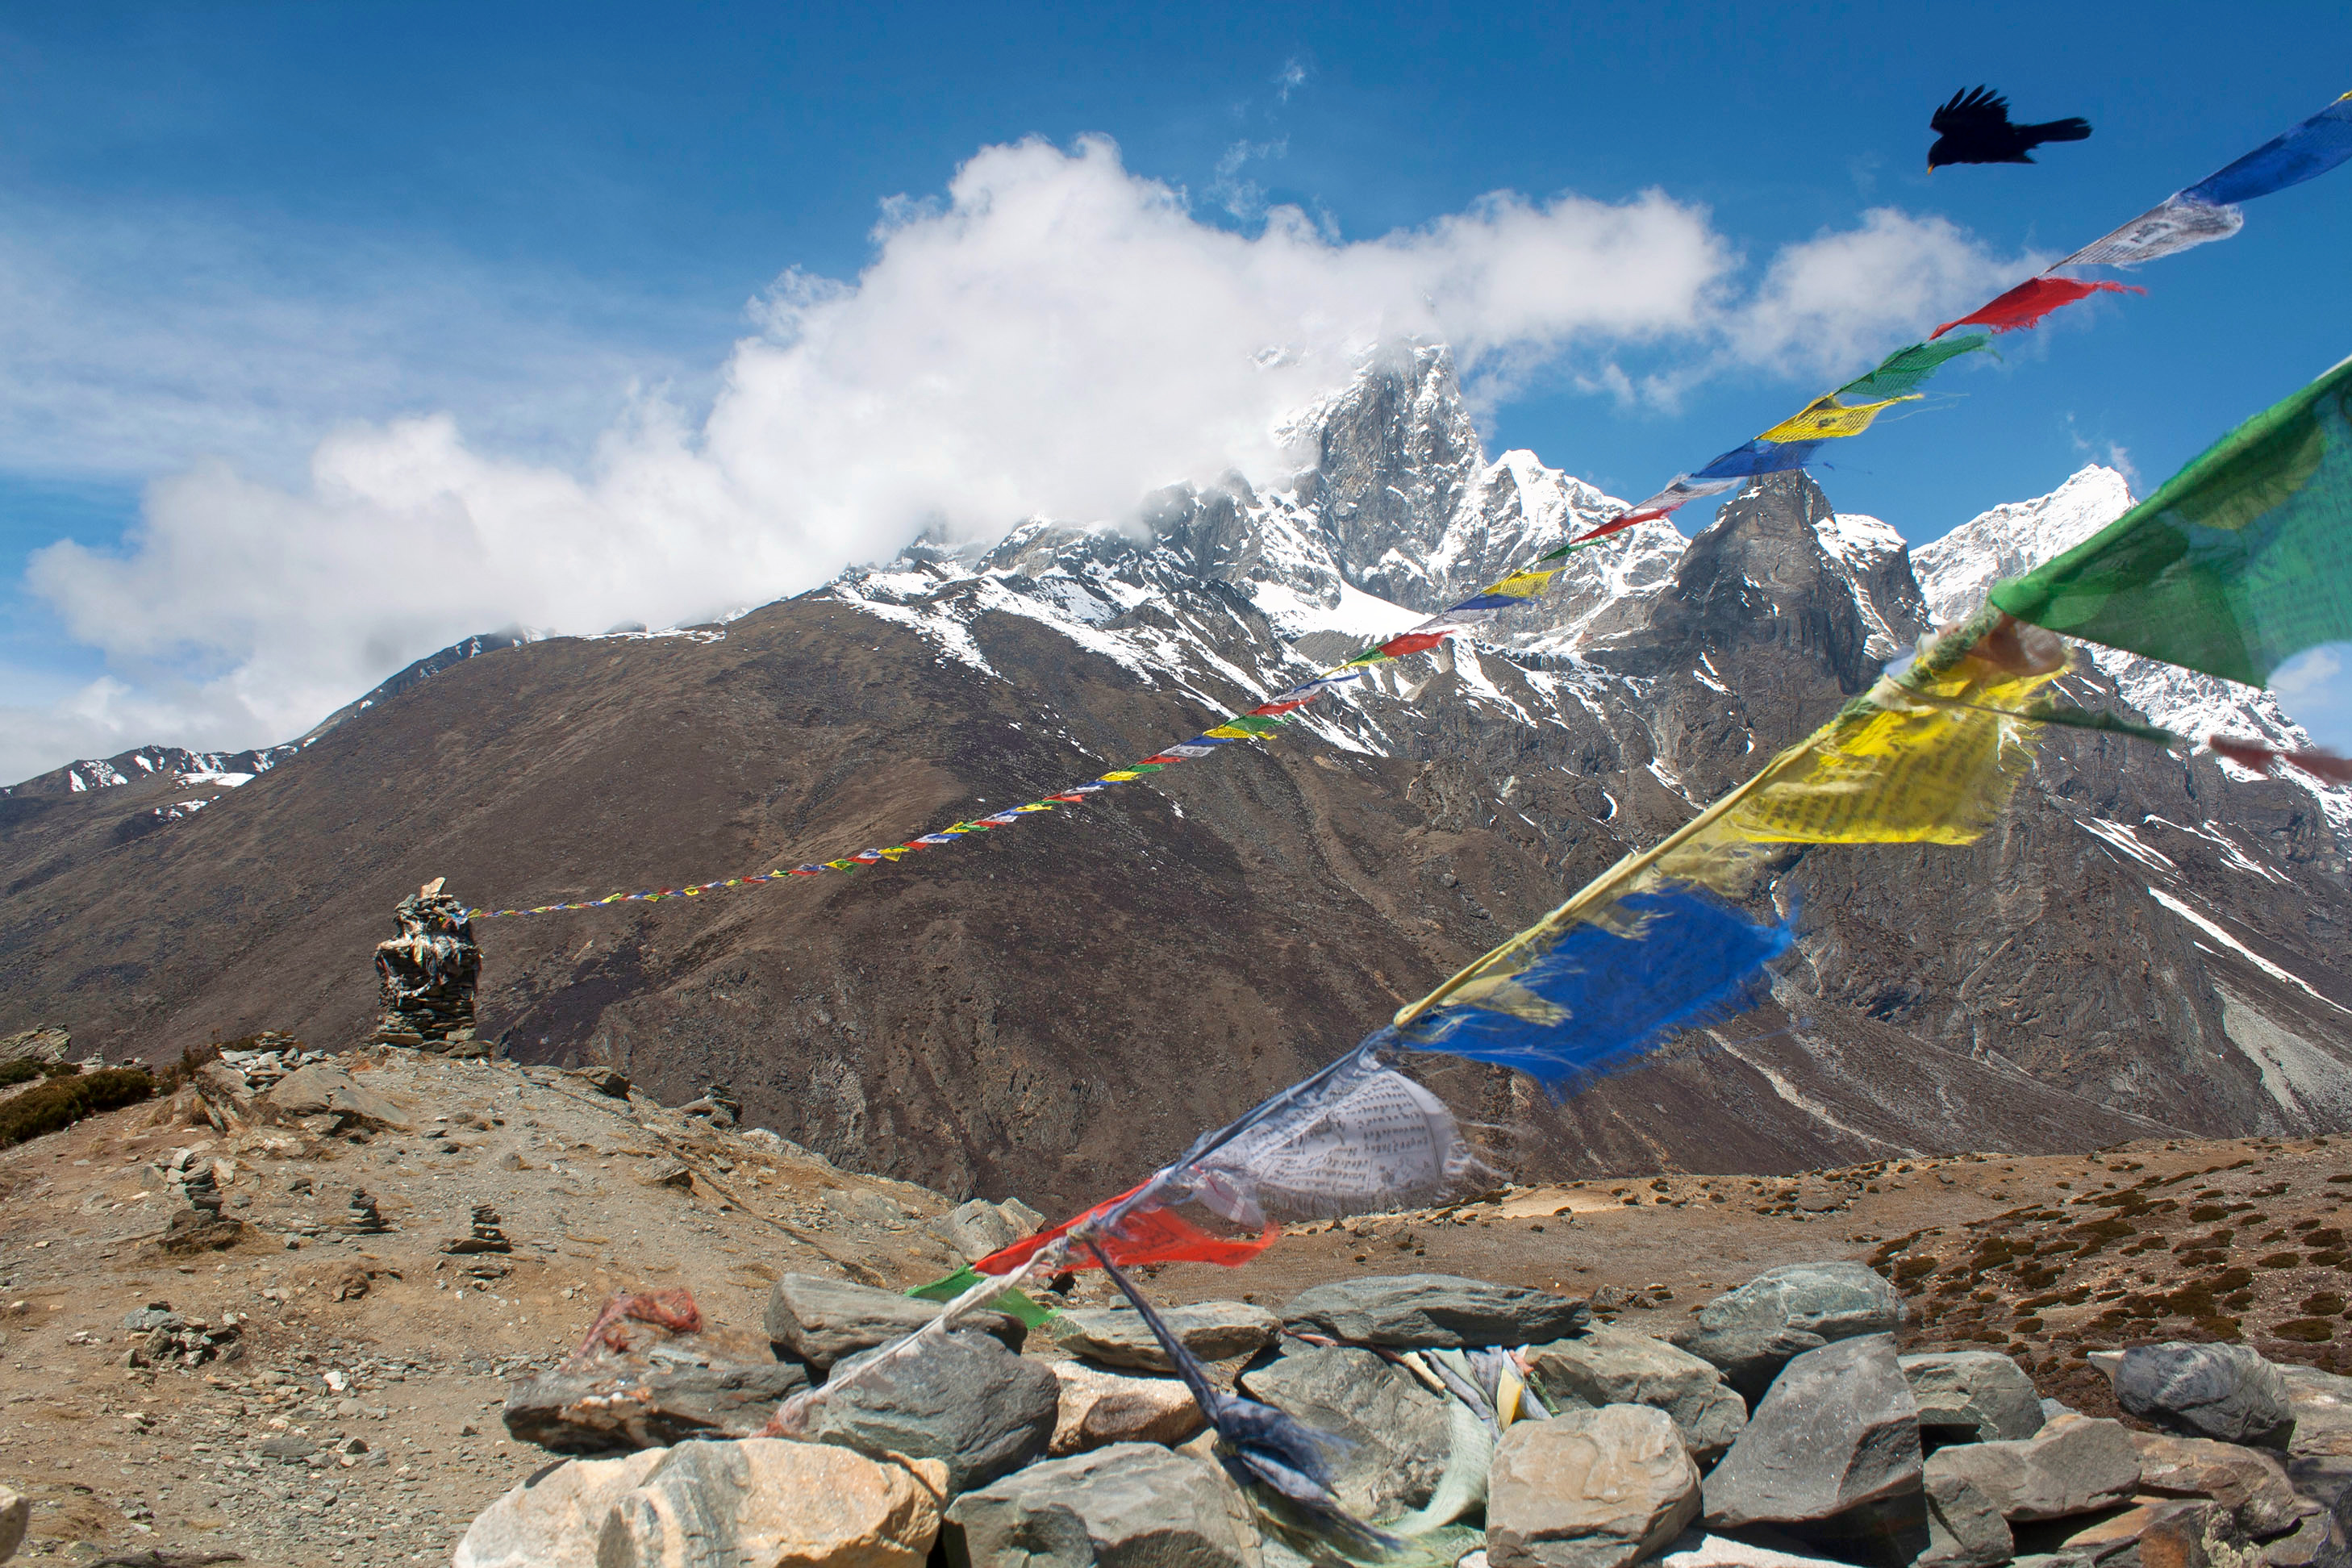 1486972156_bird_and_prayer_flags_in_front_of_mt_ama_dablam__sagarmatha_national_park__nepal.jpg